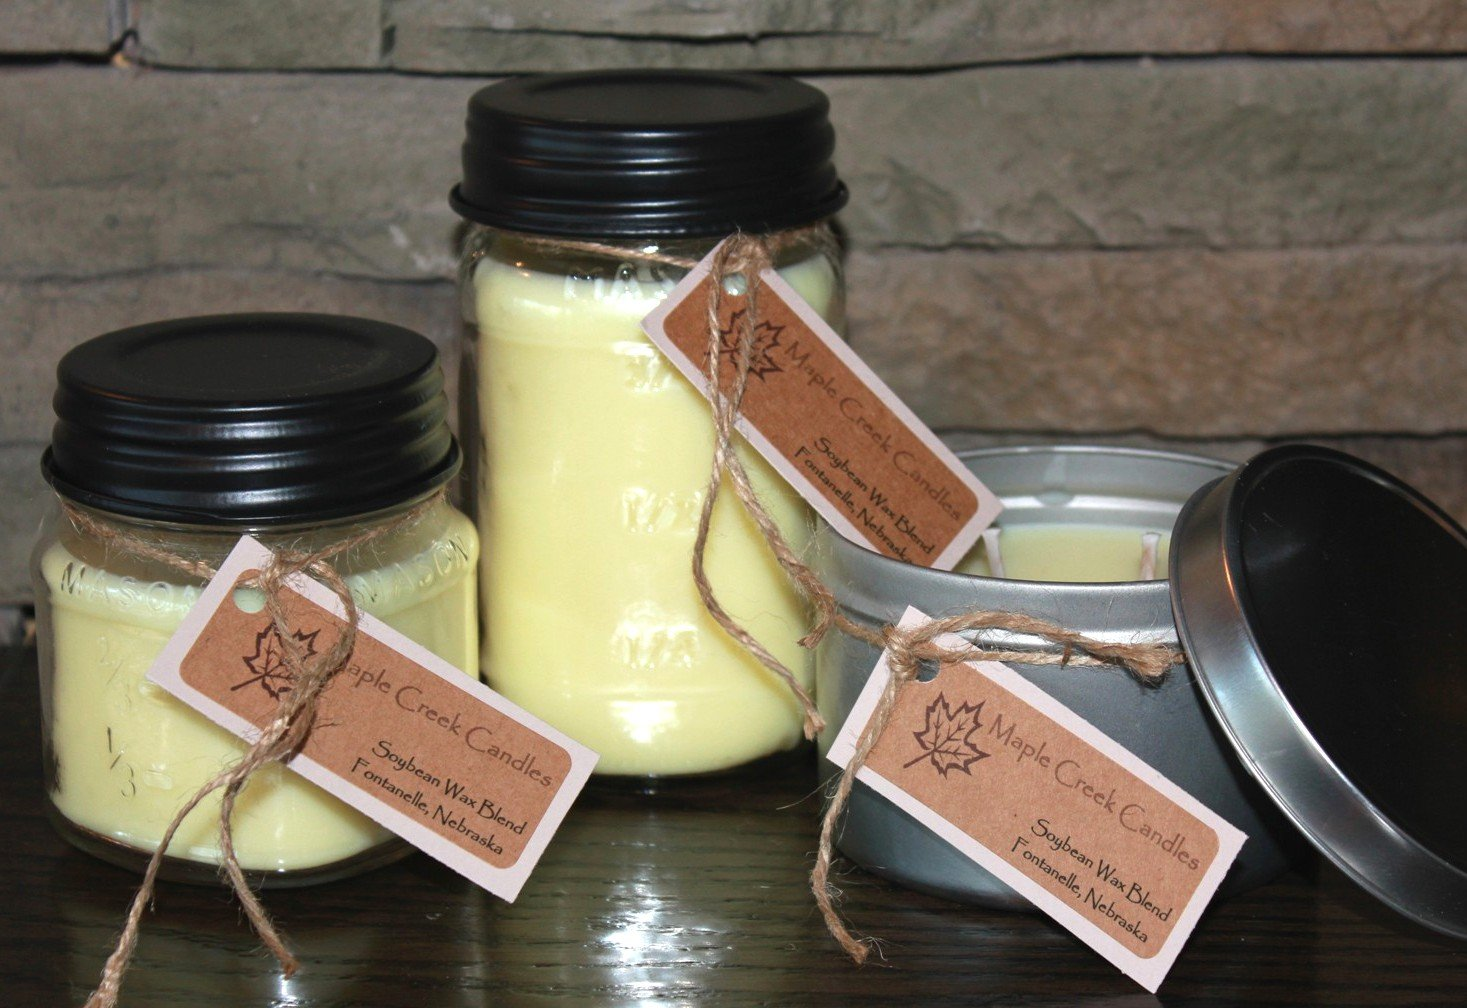 Maple Creek Candles POPCORN ~ Hot, Buttery, Movie Night ~ Soy Wax Blend 16oz jar candle